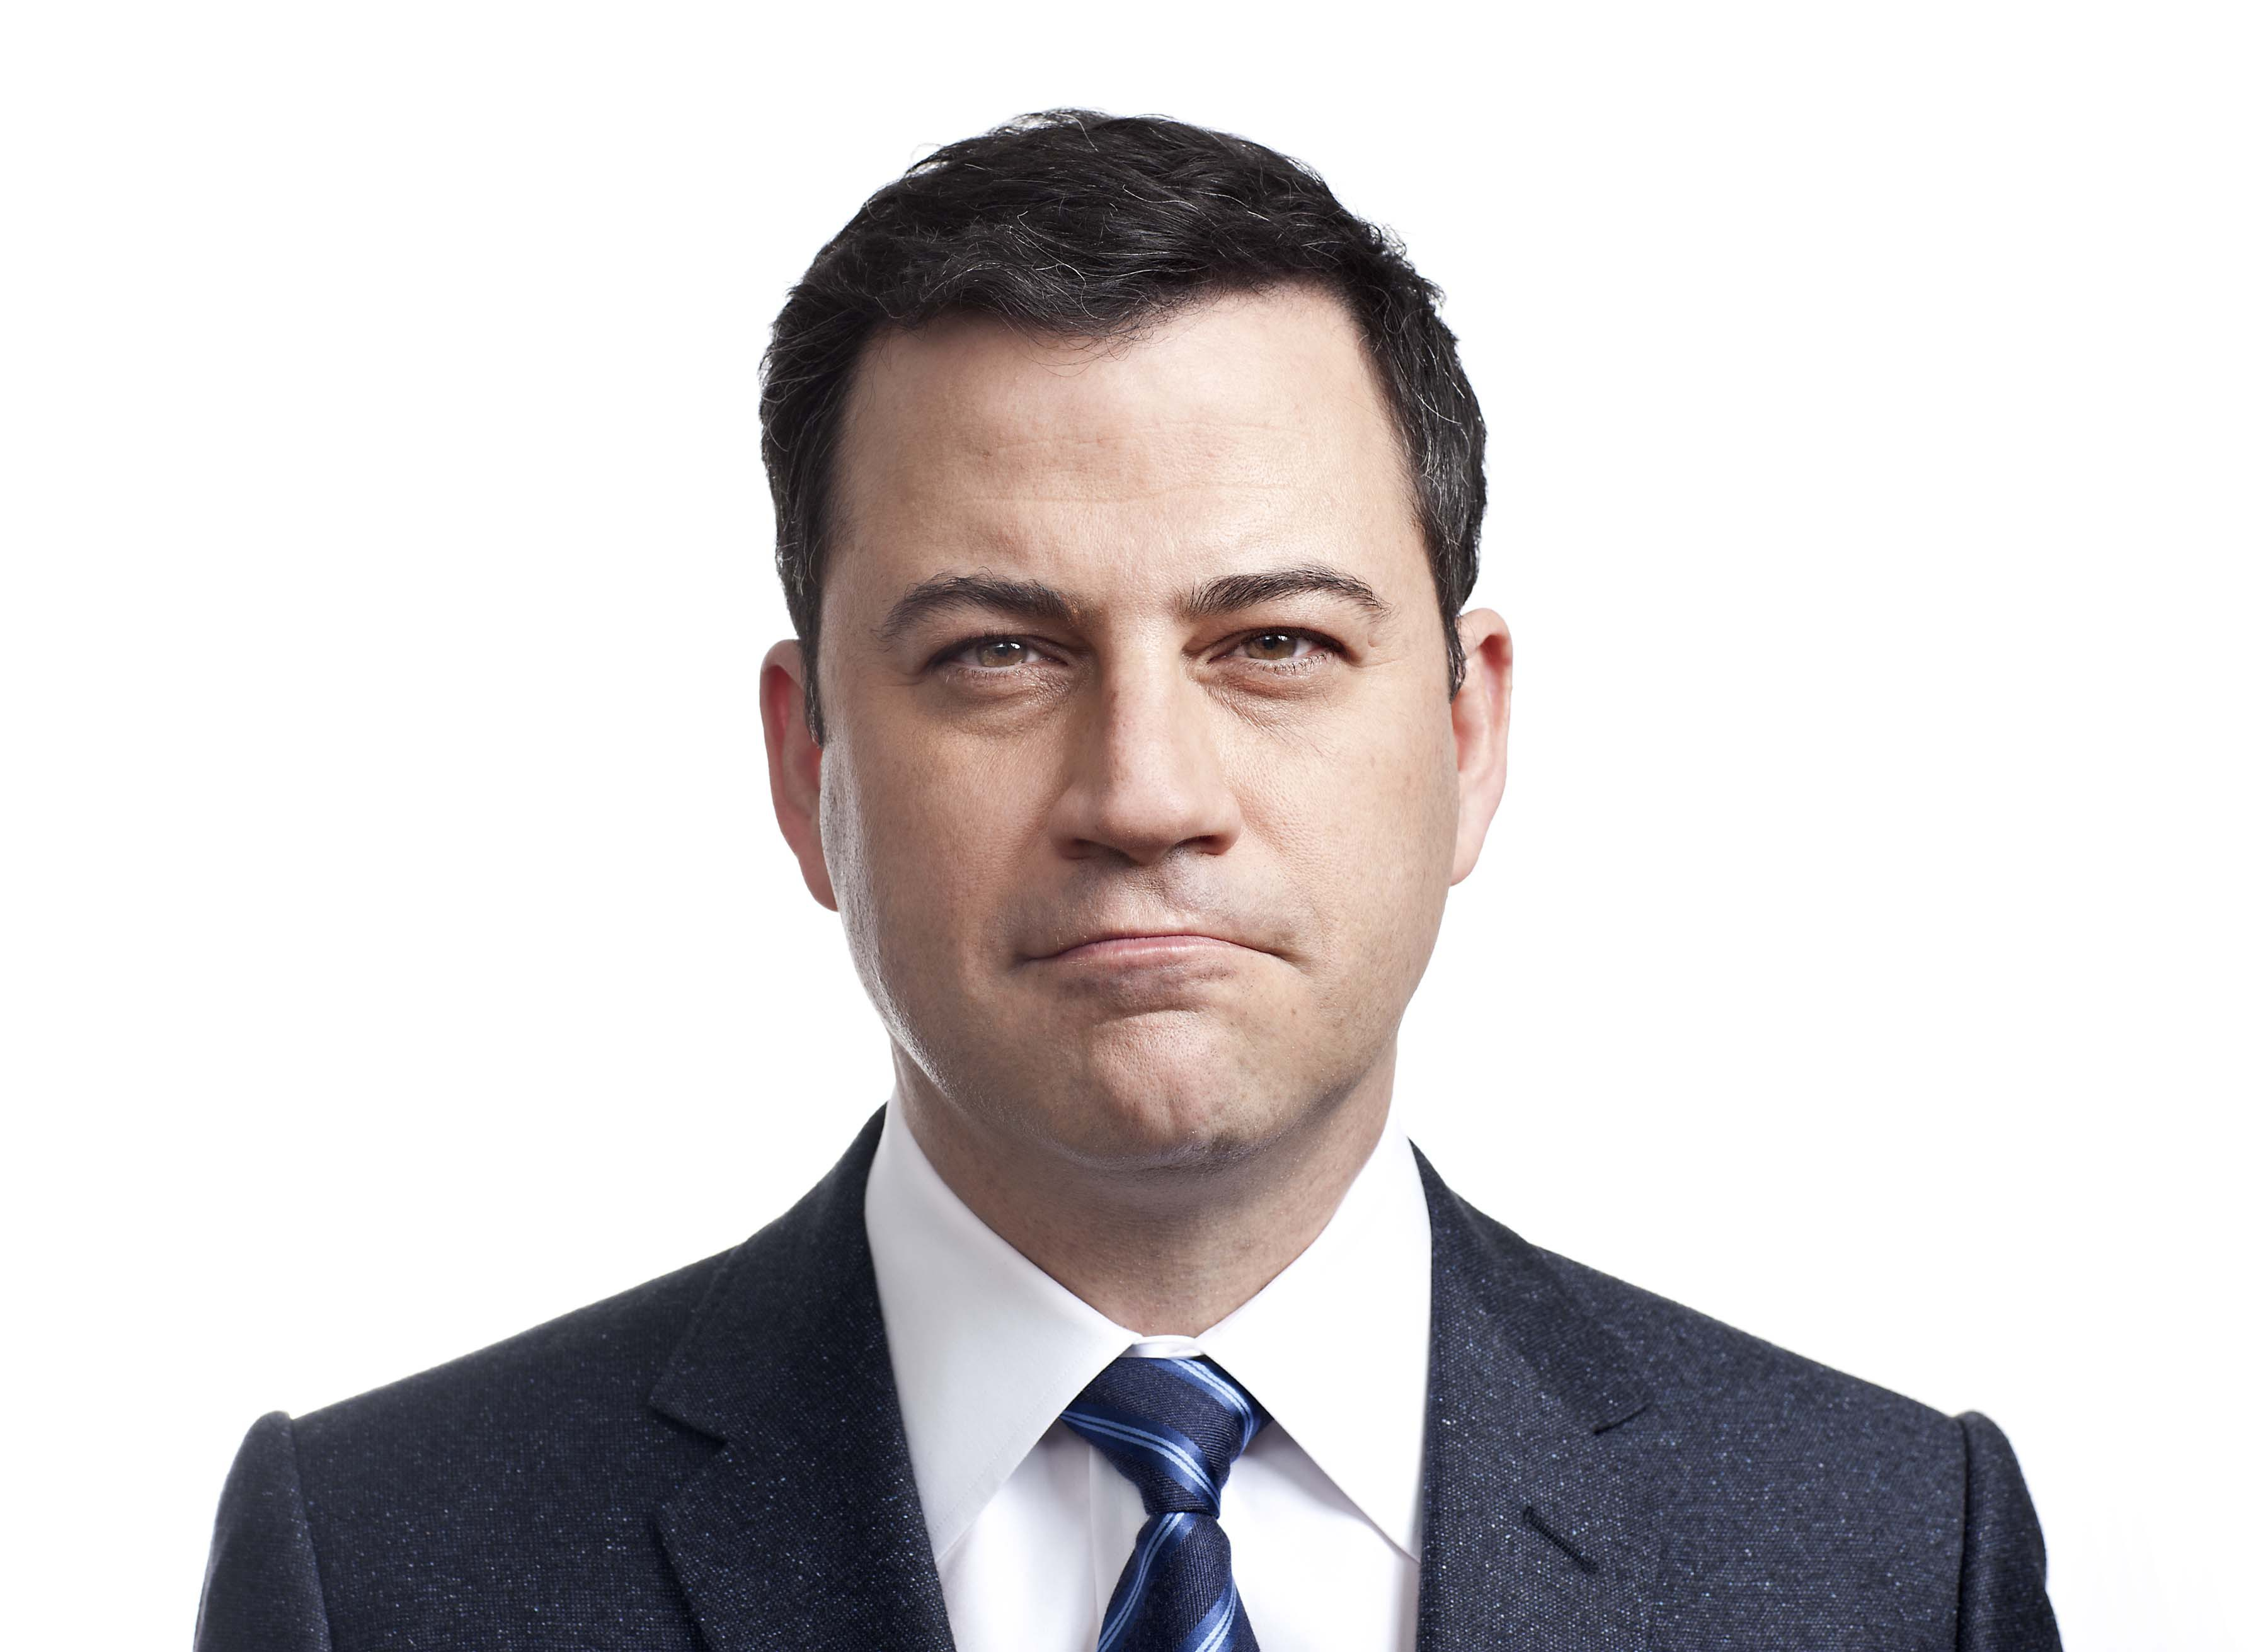 Jimmy Kimmel Wallpapers Images Photos Pictures Backgrounds 3600x2623